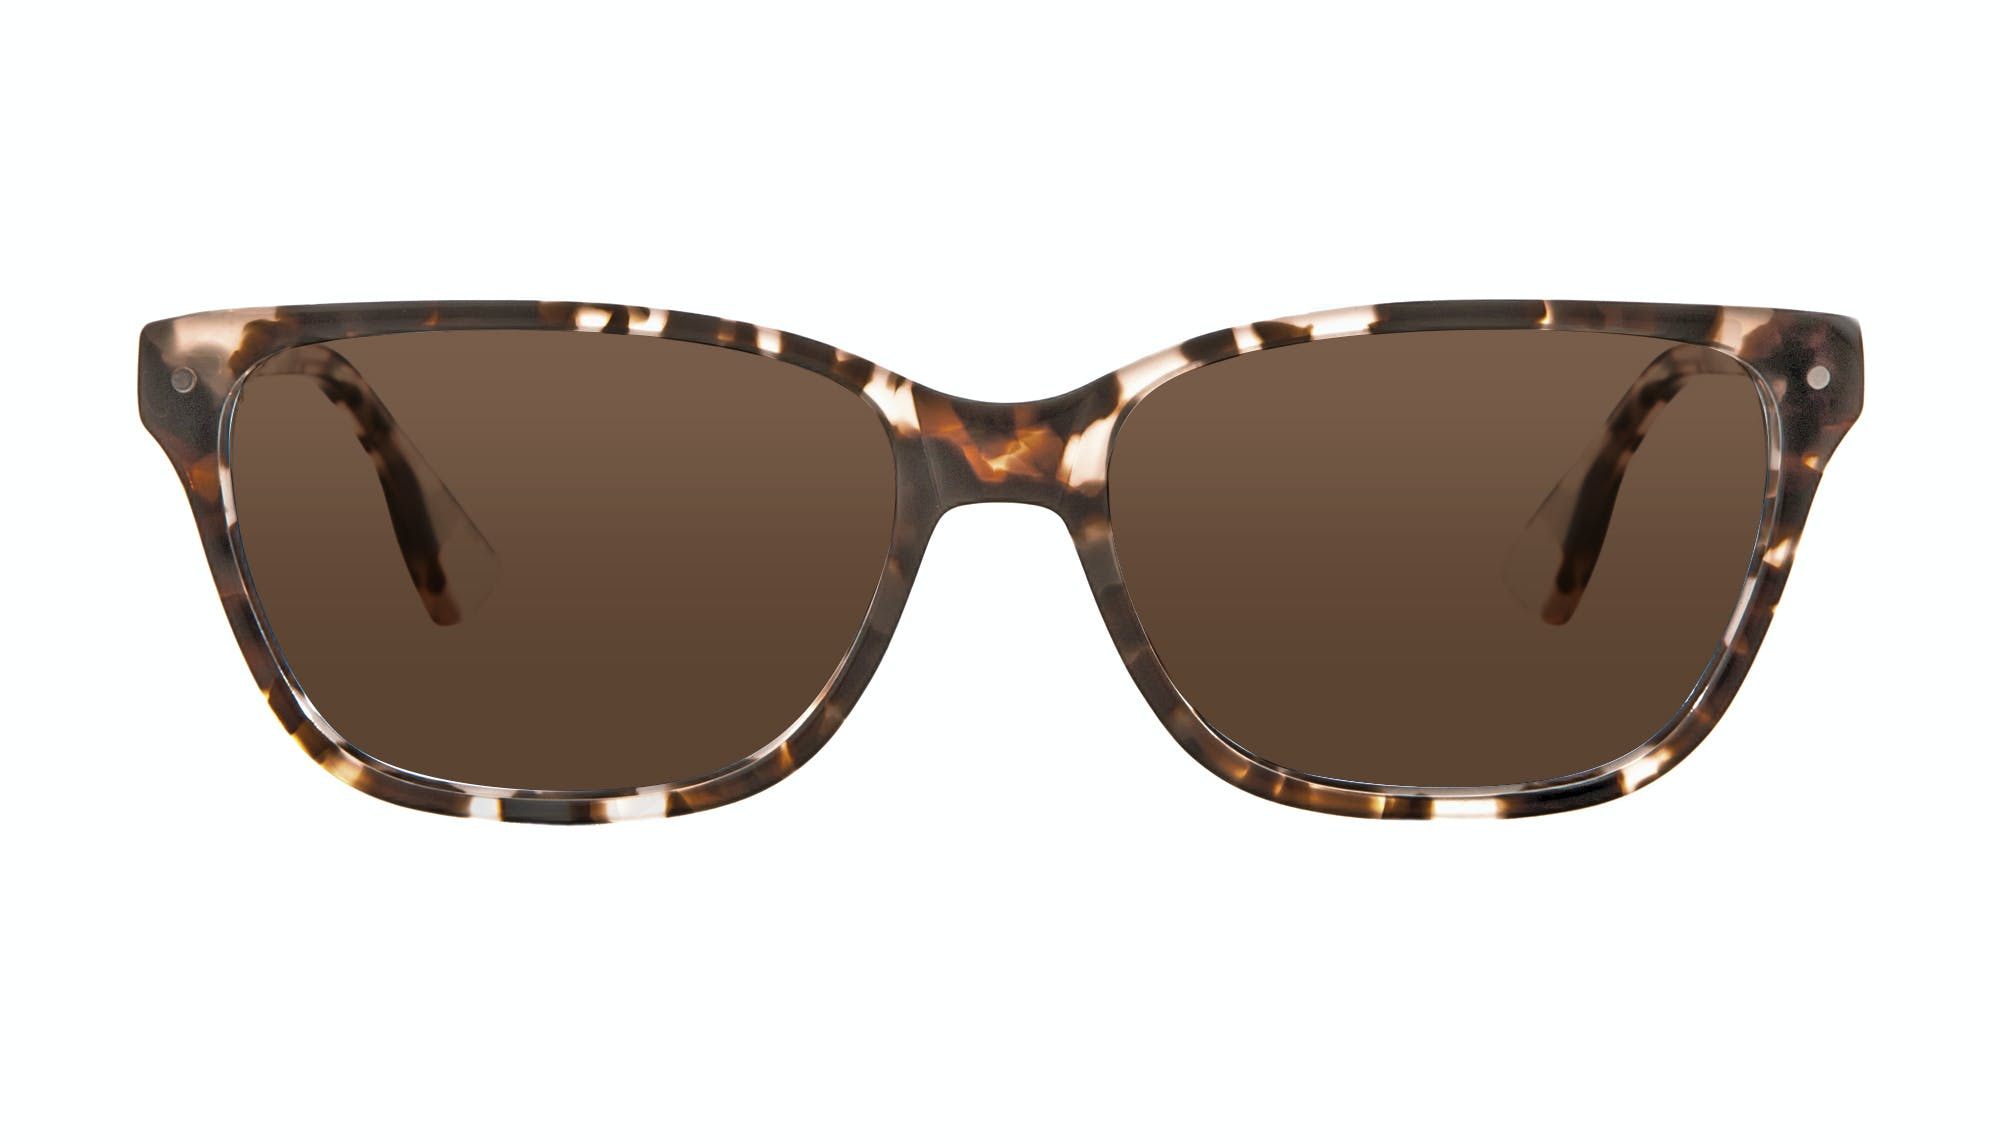 Affordable Fashion Glasses Rectangle Sunglasses Women Honeybadger Pink Tortoise Front